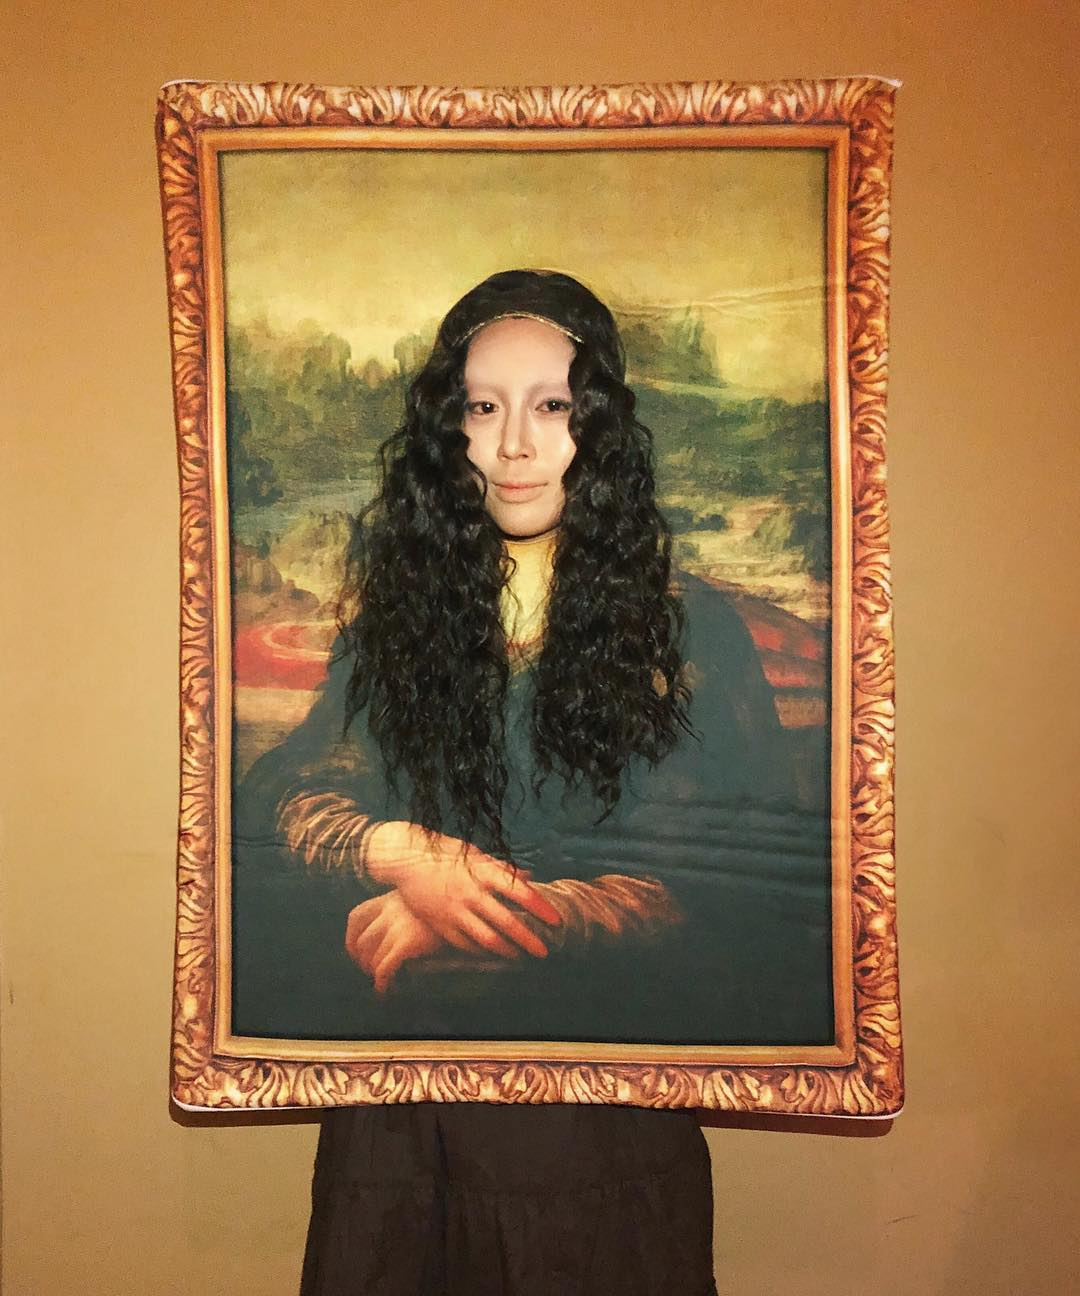 Aimee Song as the Mona Lisa // via instagram.com/songofstyle